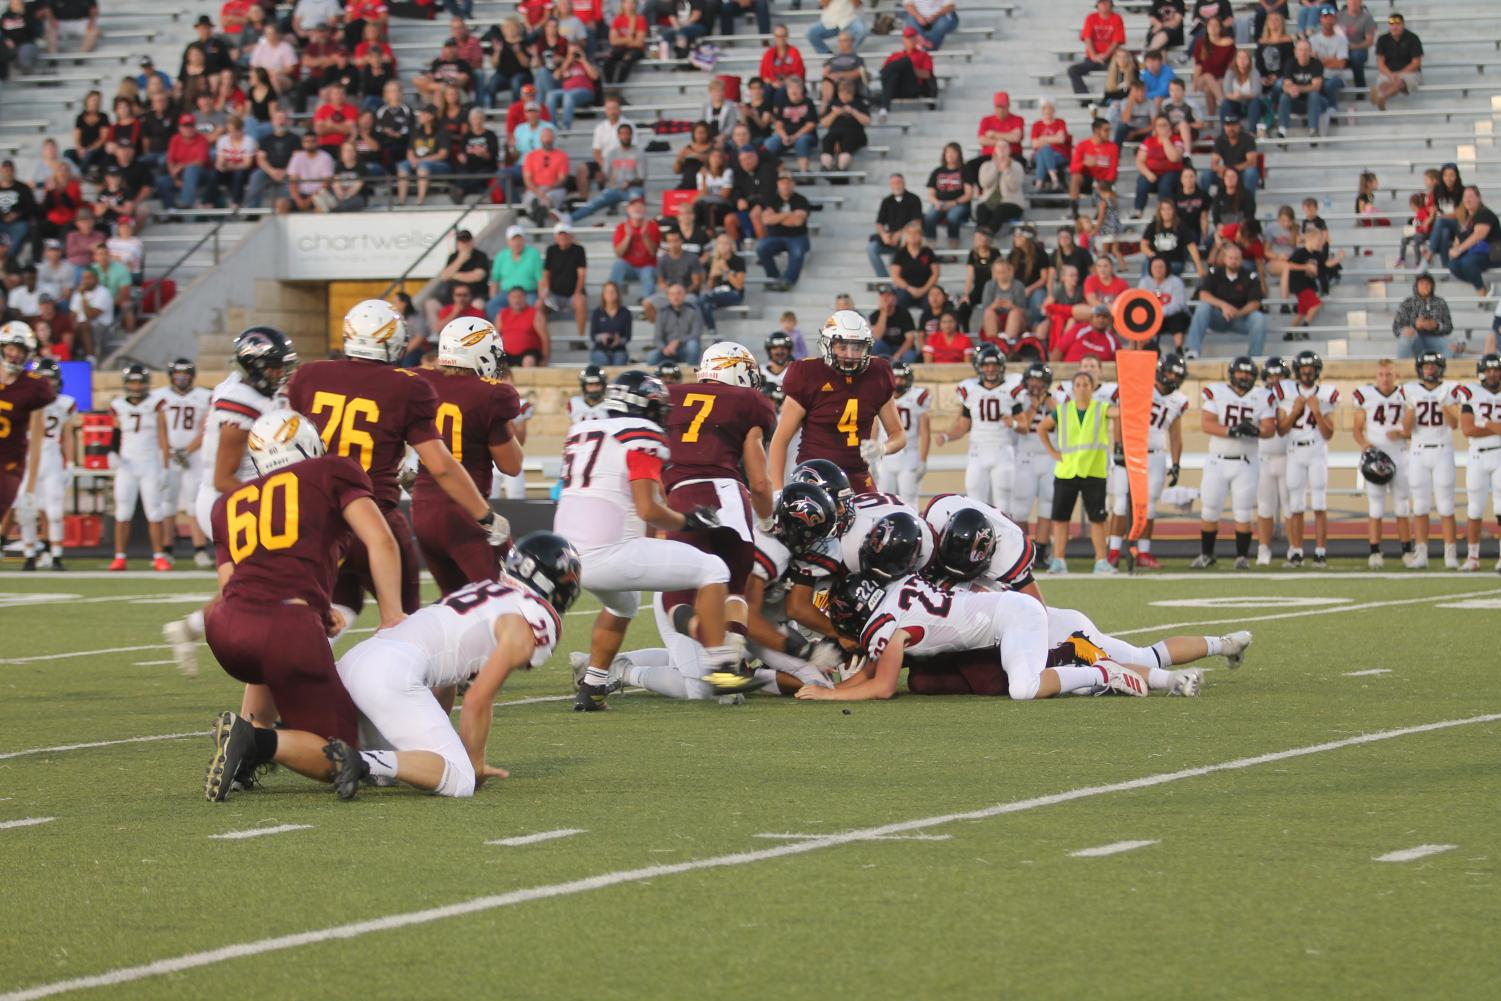 The Indian offense runs a play against the Panthers during the game on the 13th.